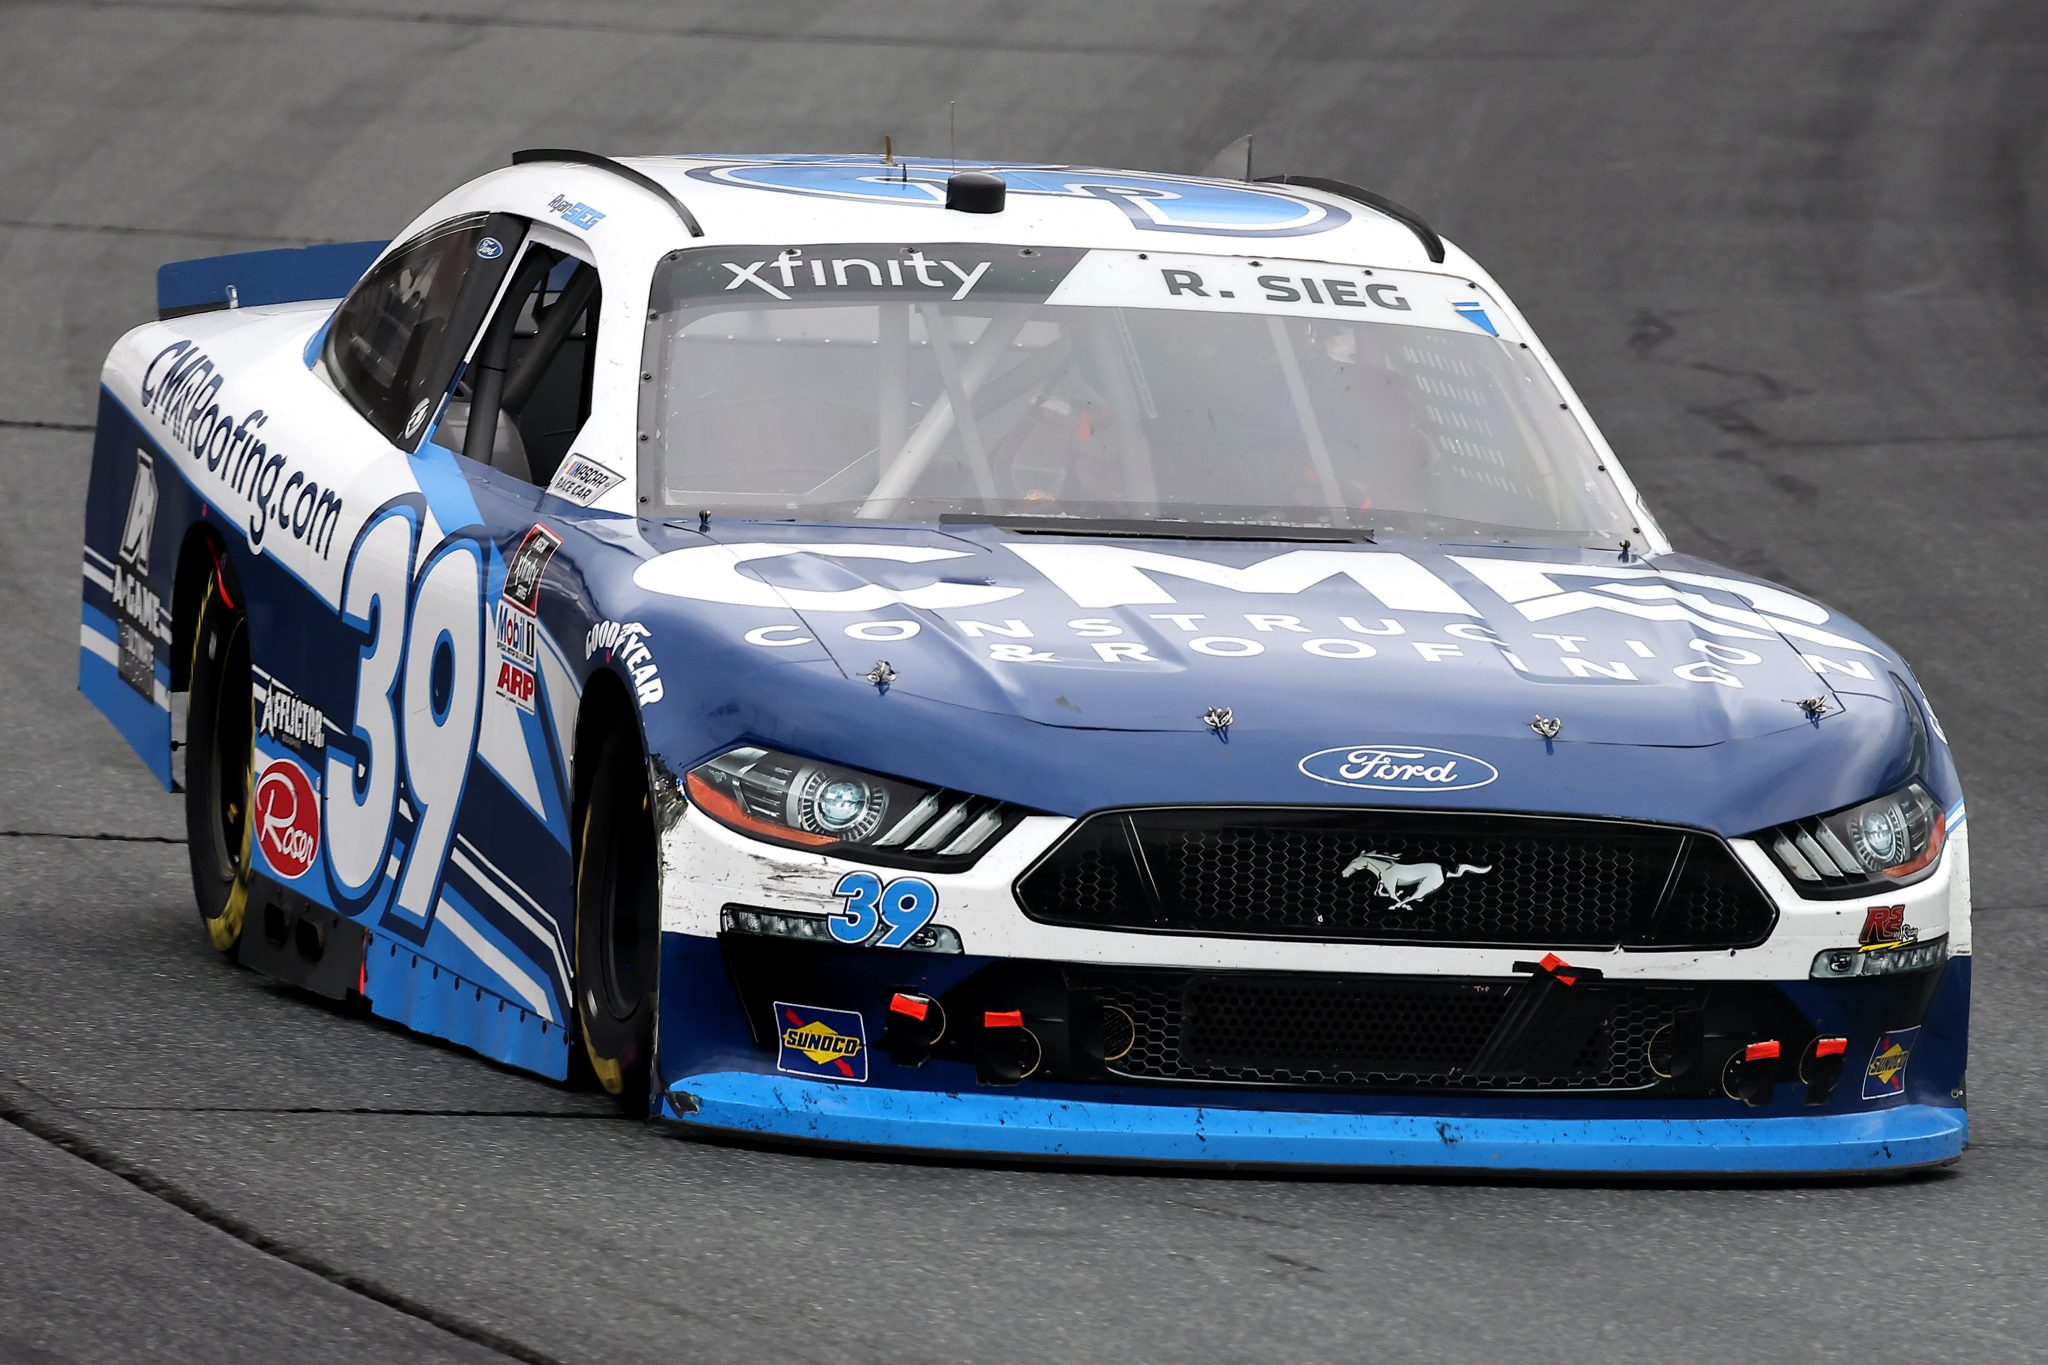 LOUDON, NEW HAMPSHIRE - JULY 17: Ryan Sieg, driver of the #39 CMR Construction and Roofing/A-Game Ford, drives during the NASCAR Xfinity Series Ambetter Get Vaccinated 200 at New Hampshire Motor Speedway on July 17, 2021 in Loudon, New Hampshire. (Photo by James Gilbert/Getty Images) | Getty Images